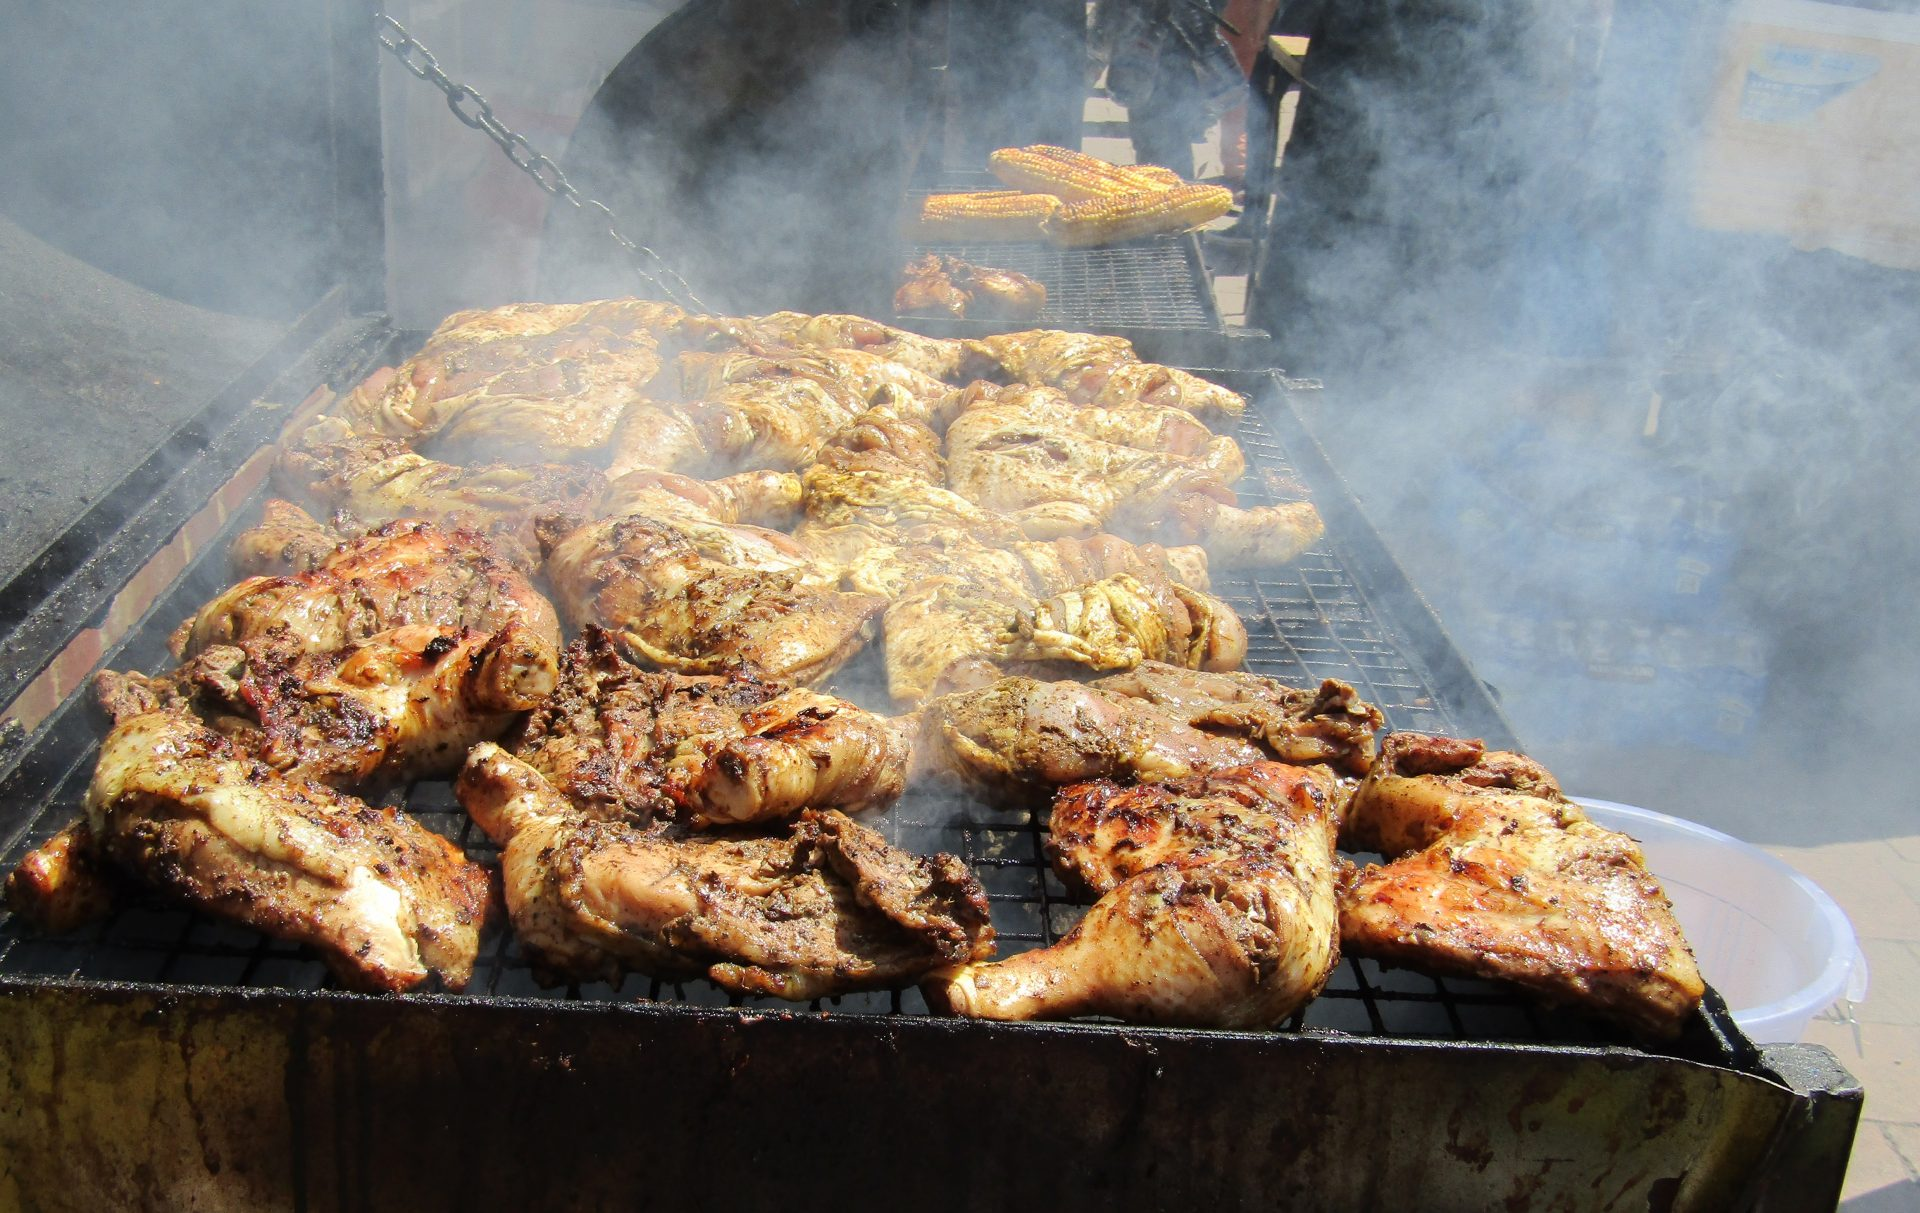 jerk chicken photograph by Sarah Airey